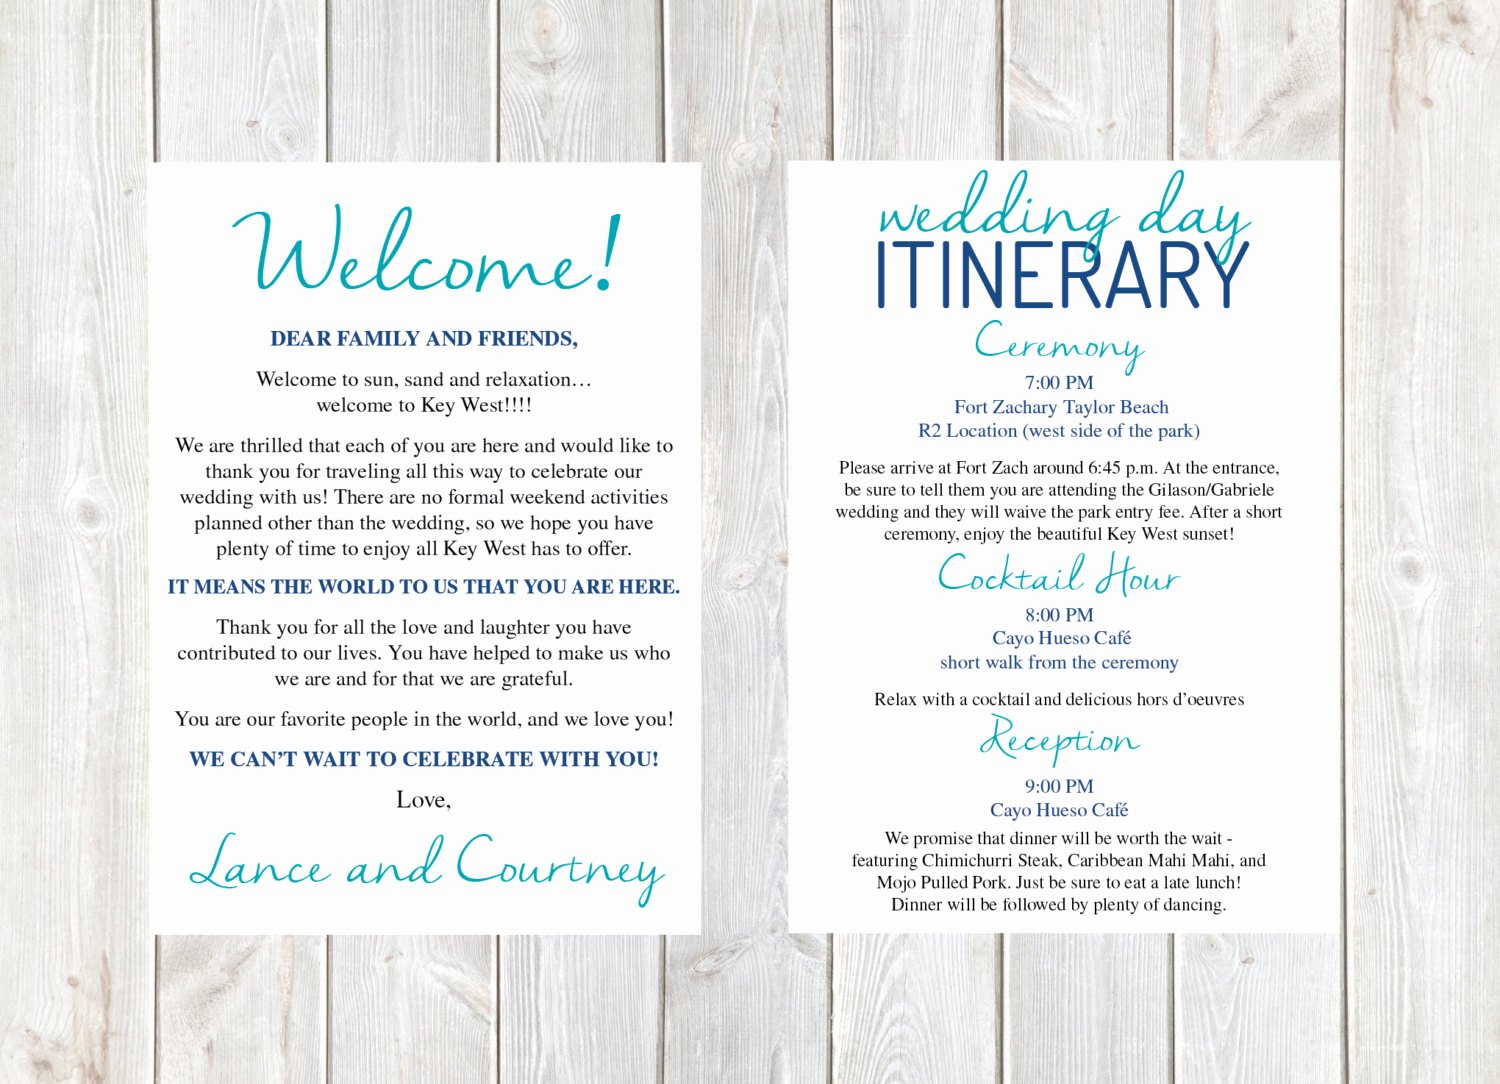 Sample Wedding Welcome Letter Inspirational Wel E Letter Wedding Wel E Letter Wedding Itinerary